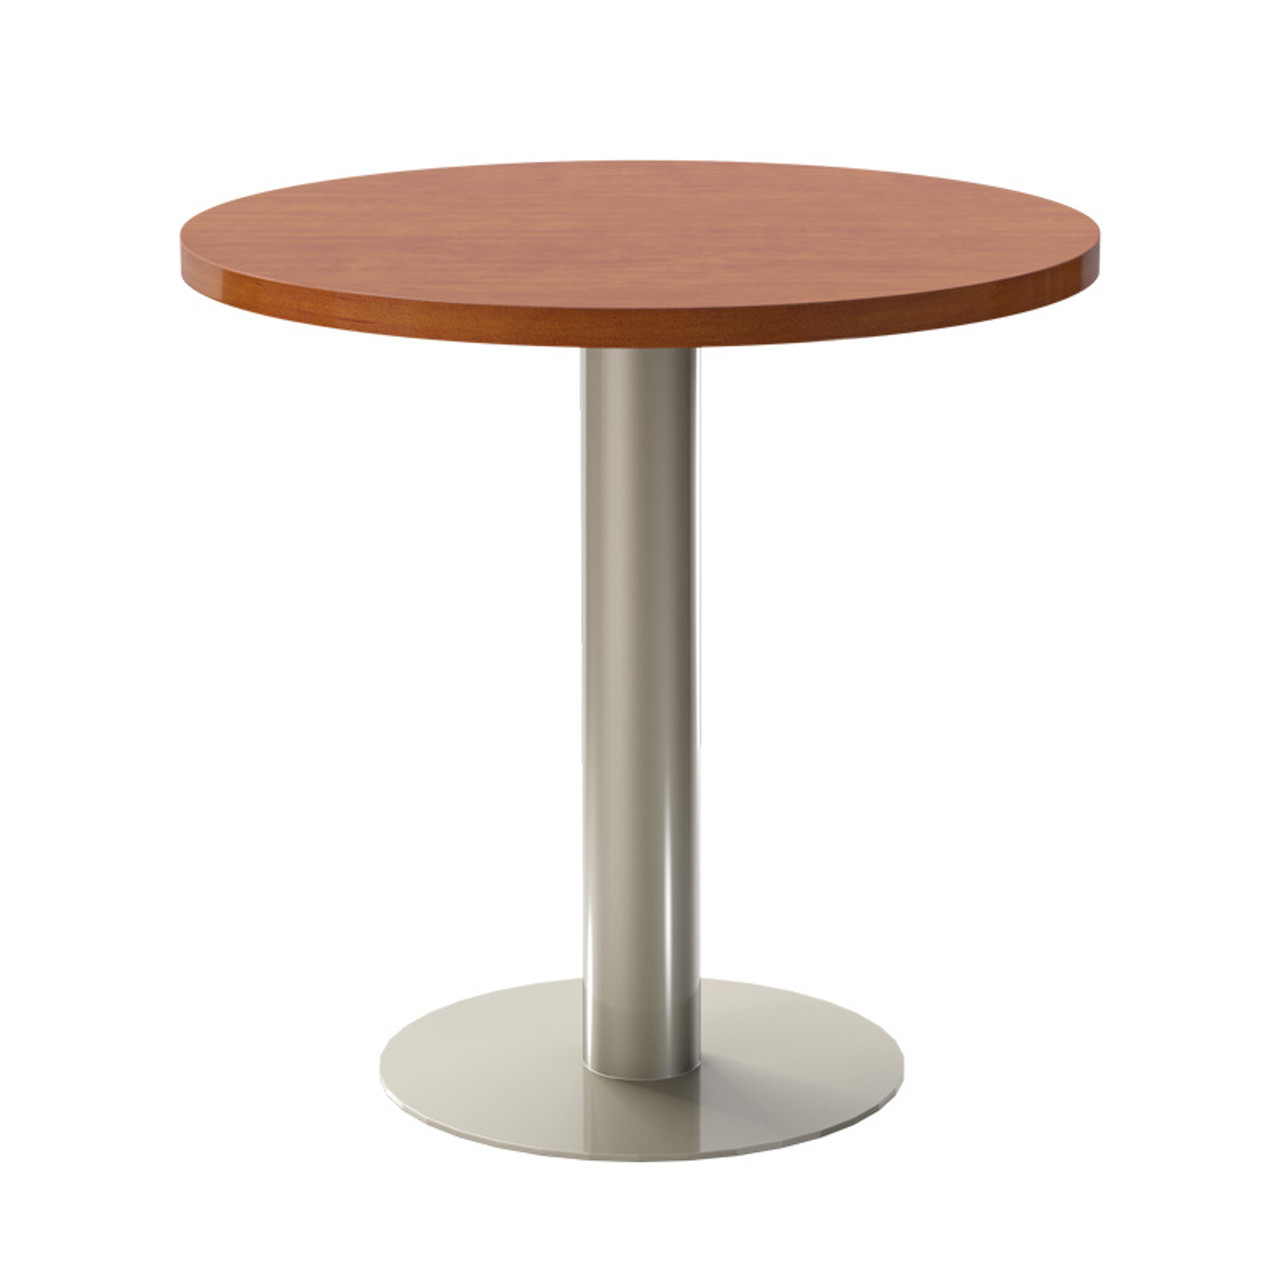 """Round Pedestal Base, 27-3/4"""" Height, 18"""" Base Diameter, 4"""" diameter Column, with welded mounting plate, tabletop not included - Replacementtablelegs.com"""